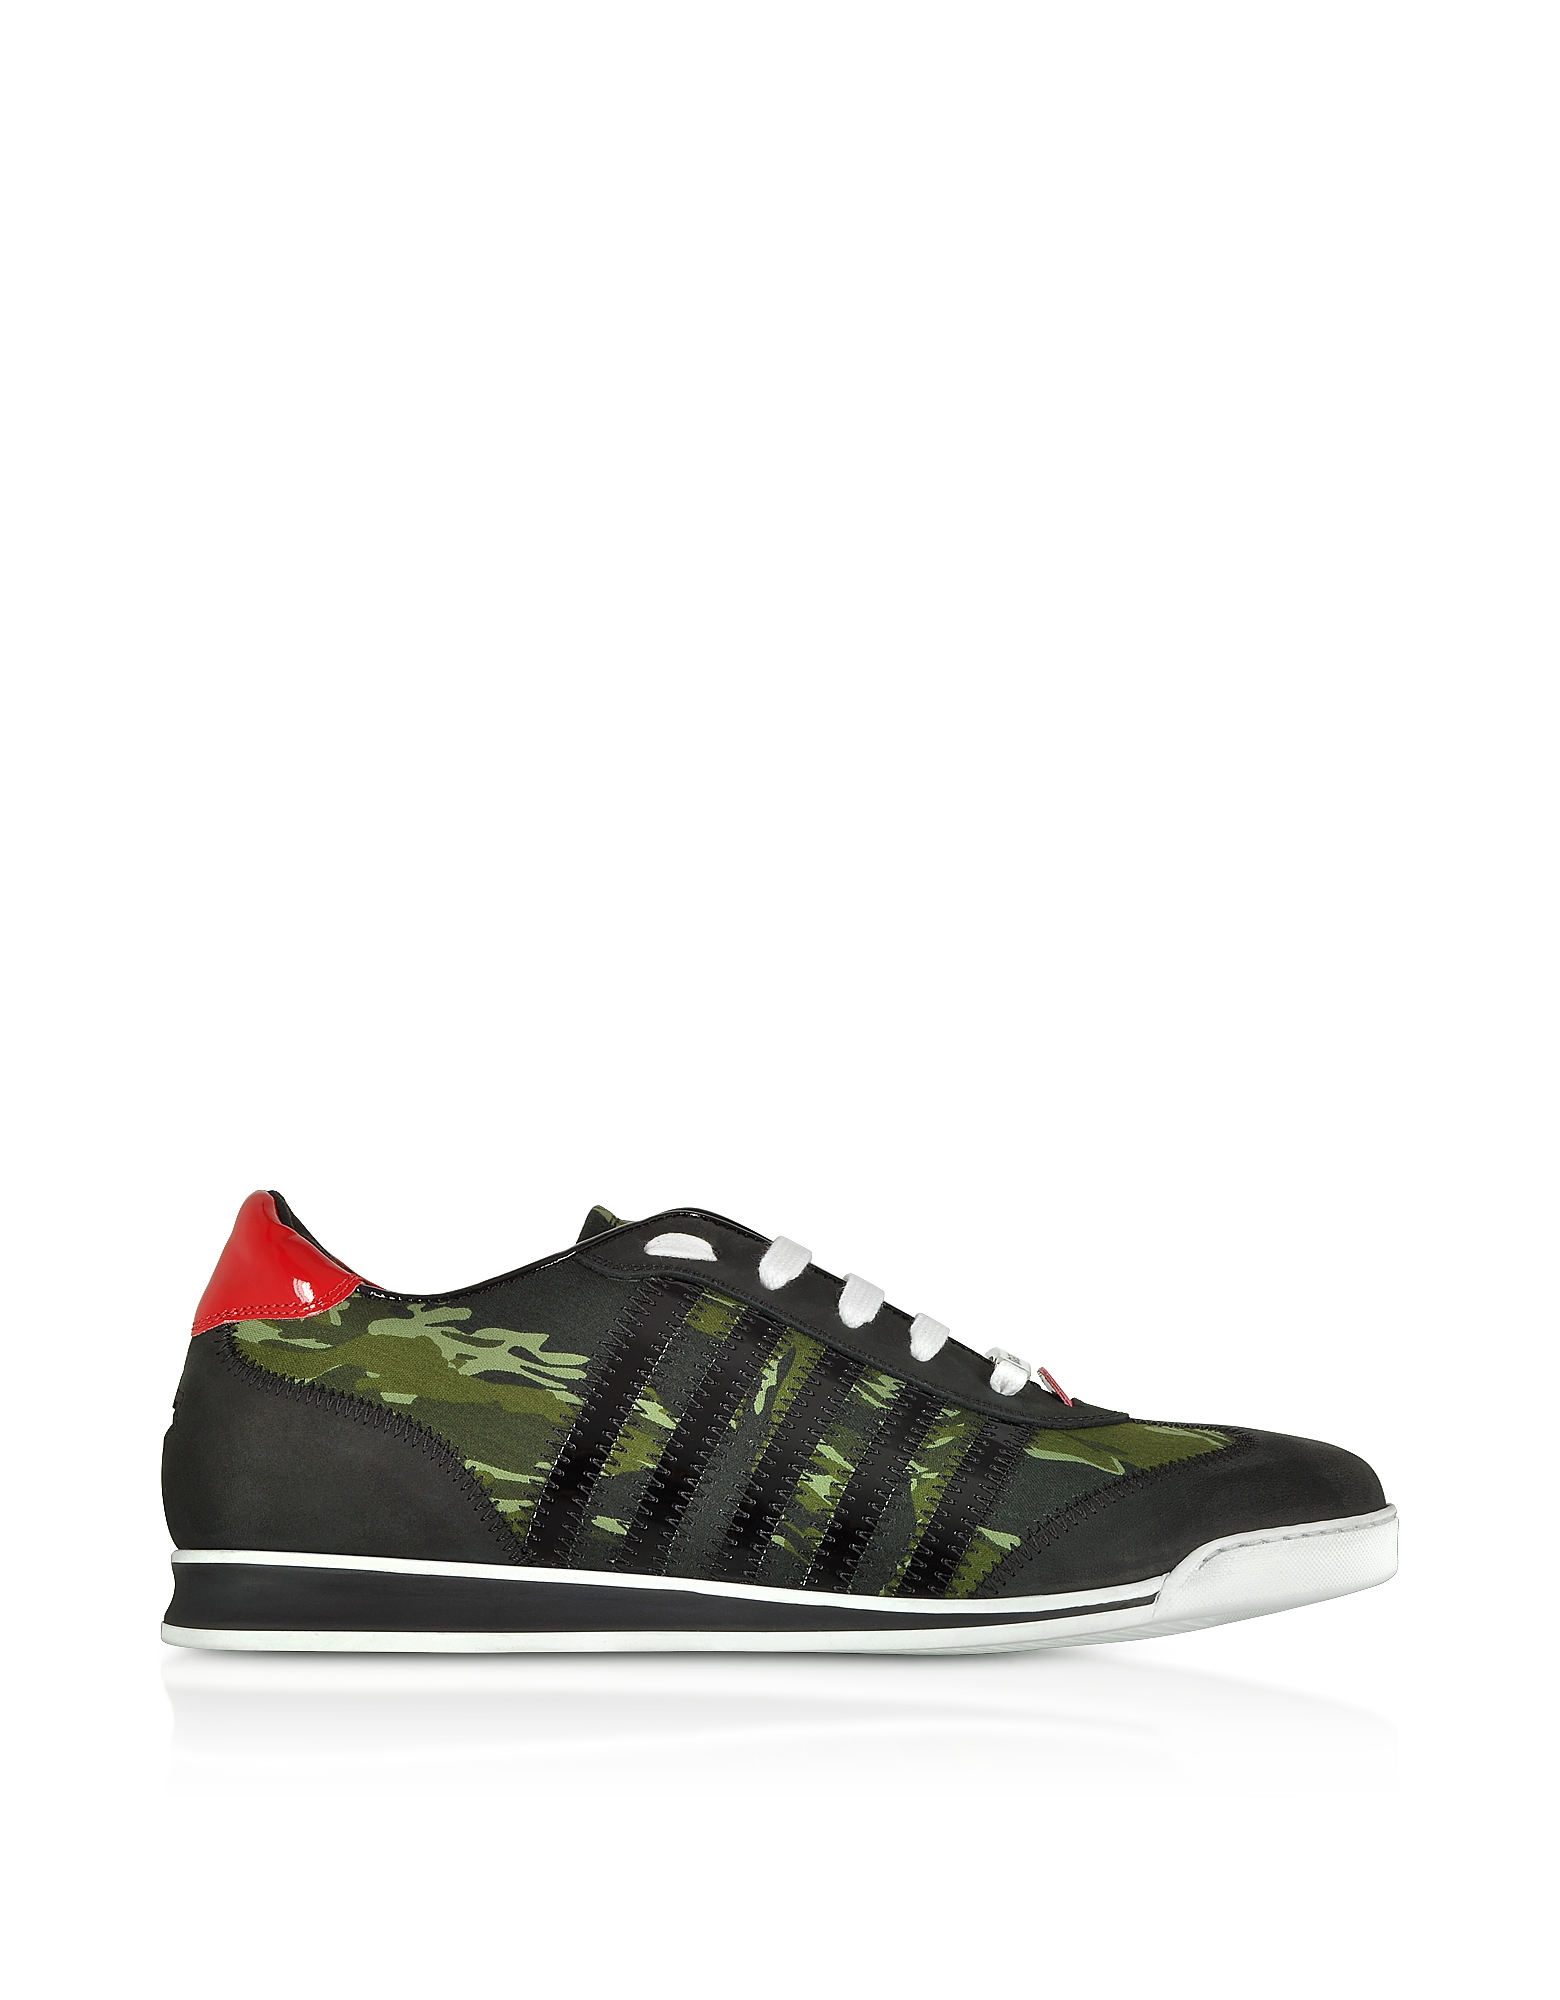 Camoulage Nylon Men's Sneakers